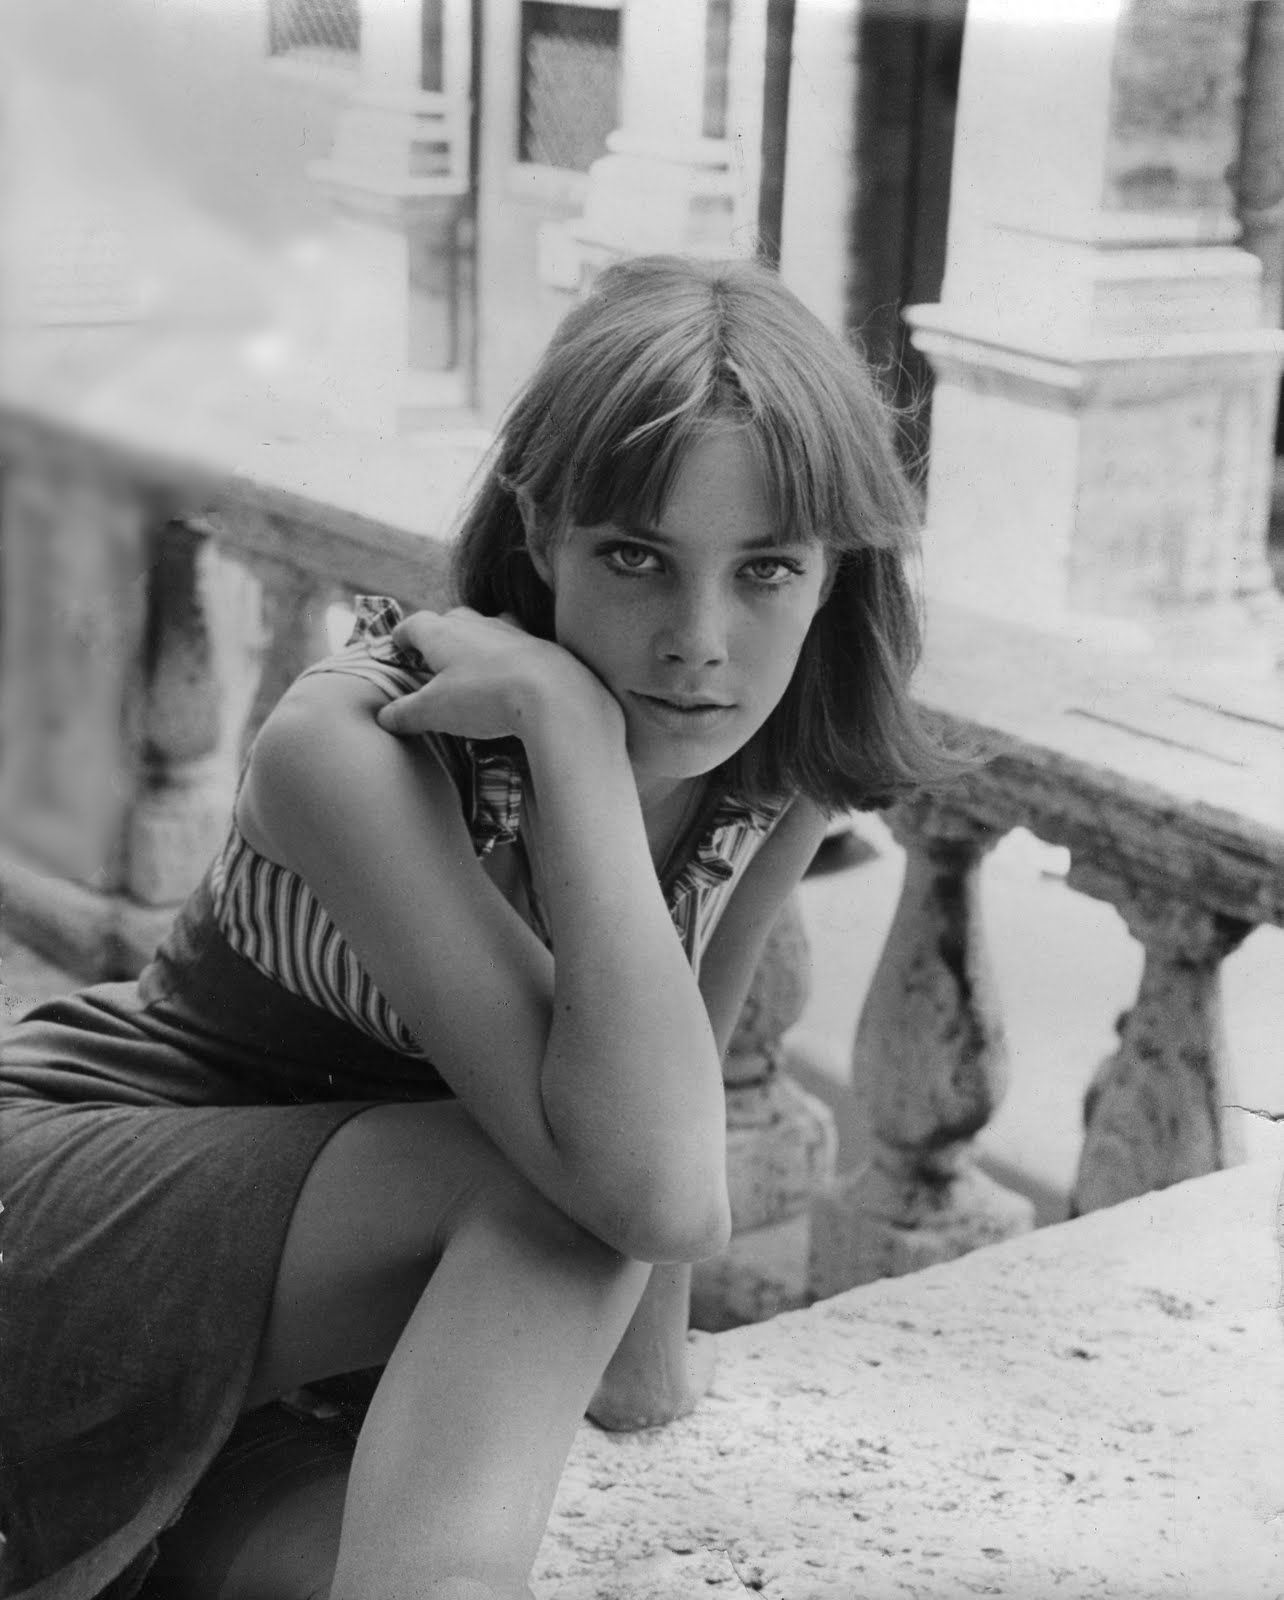 Jane Birkin (born 1946)